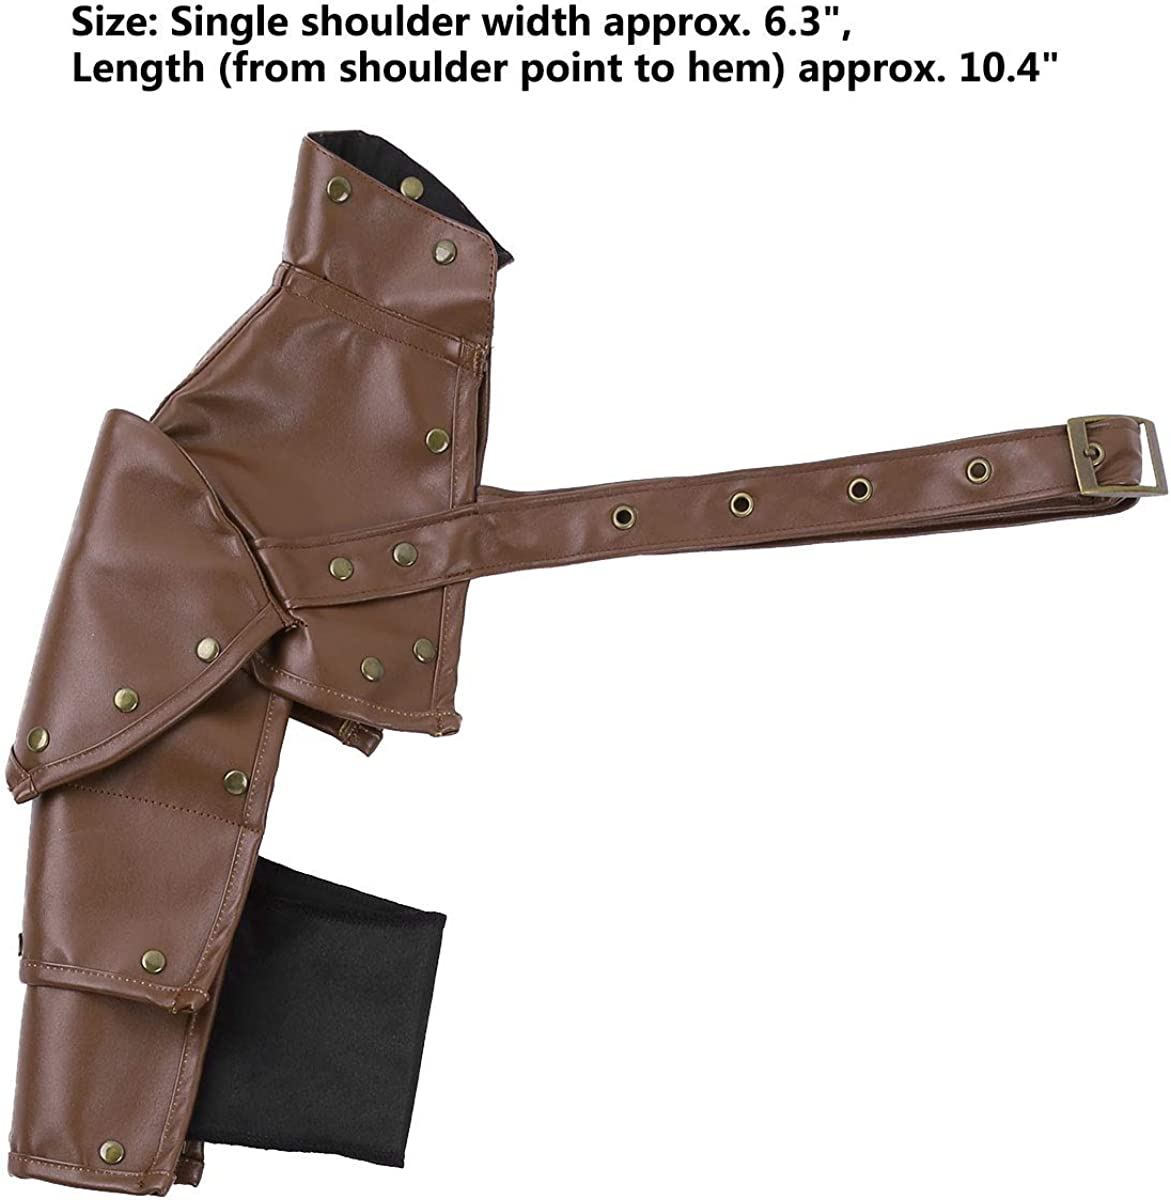 Freebily Gothic Steampunk Faux Leather Adjustable Metal Rivets Single Shoulder Armor Body Chest Harness Cosplay Costume Accessory